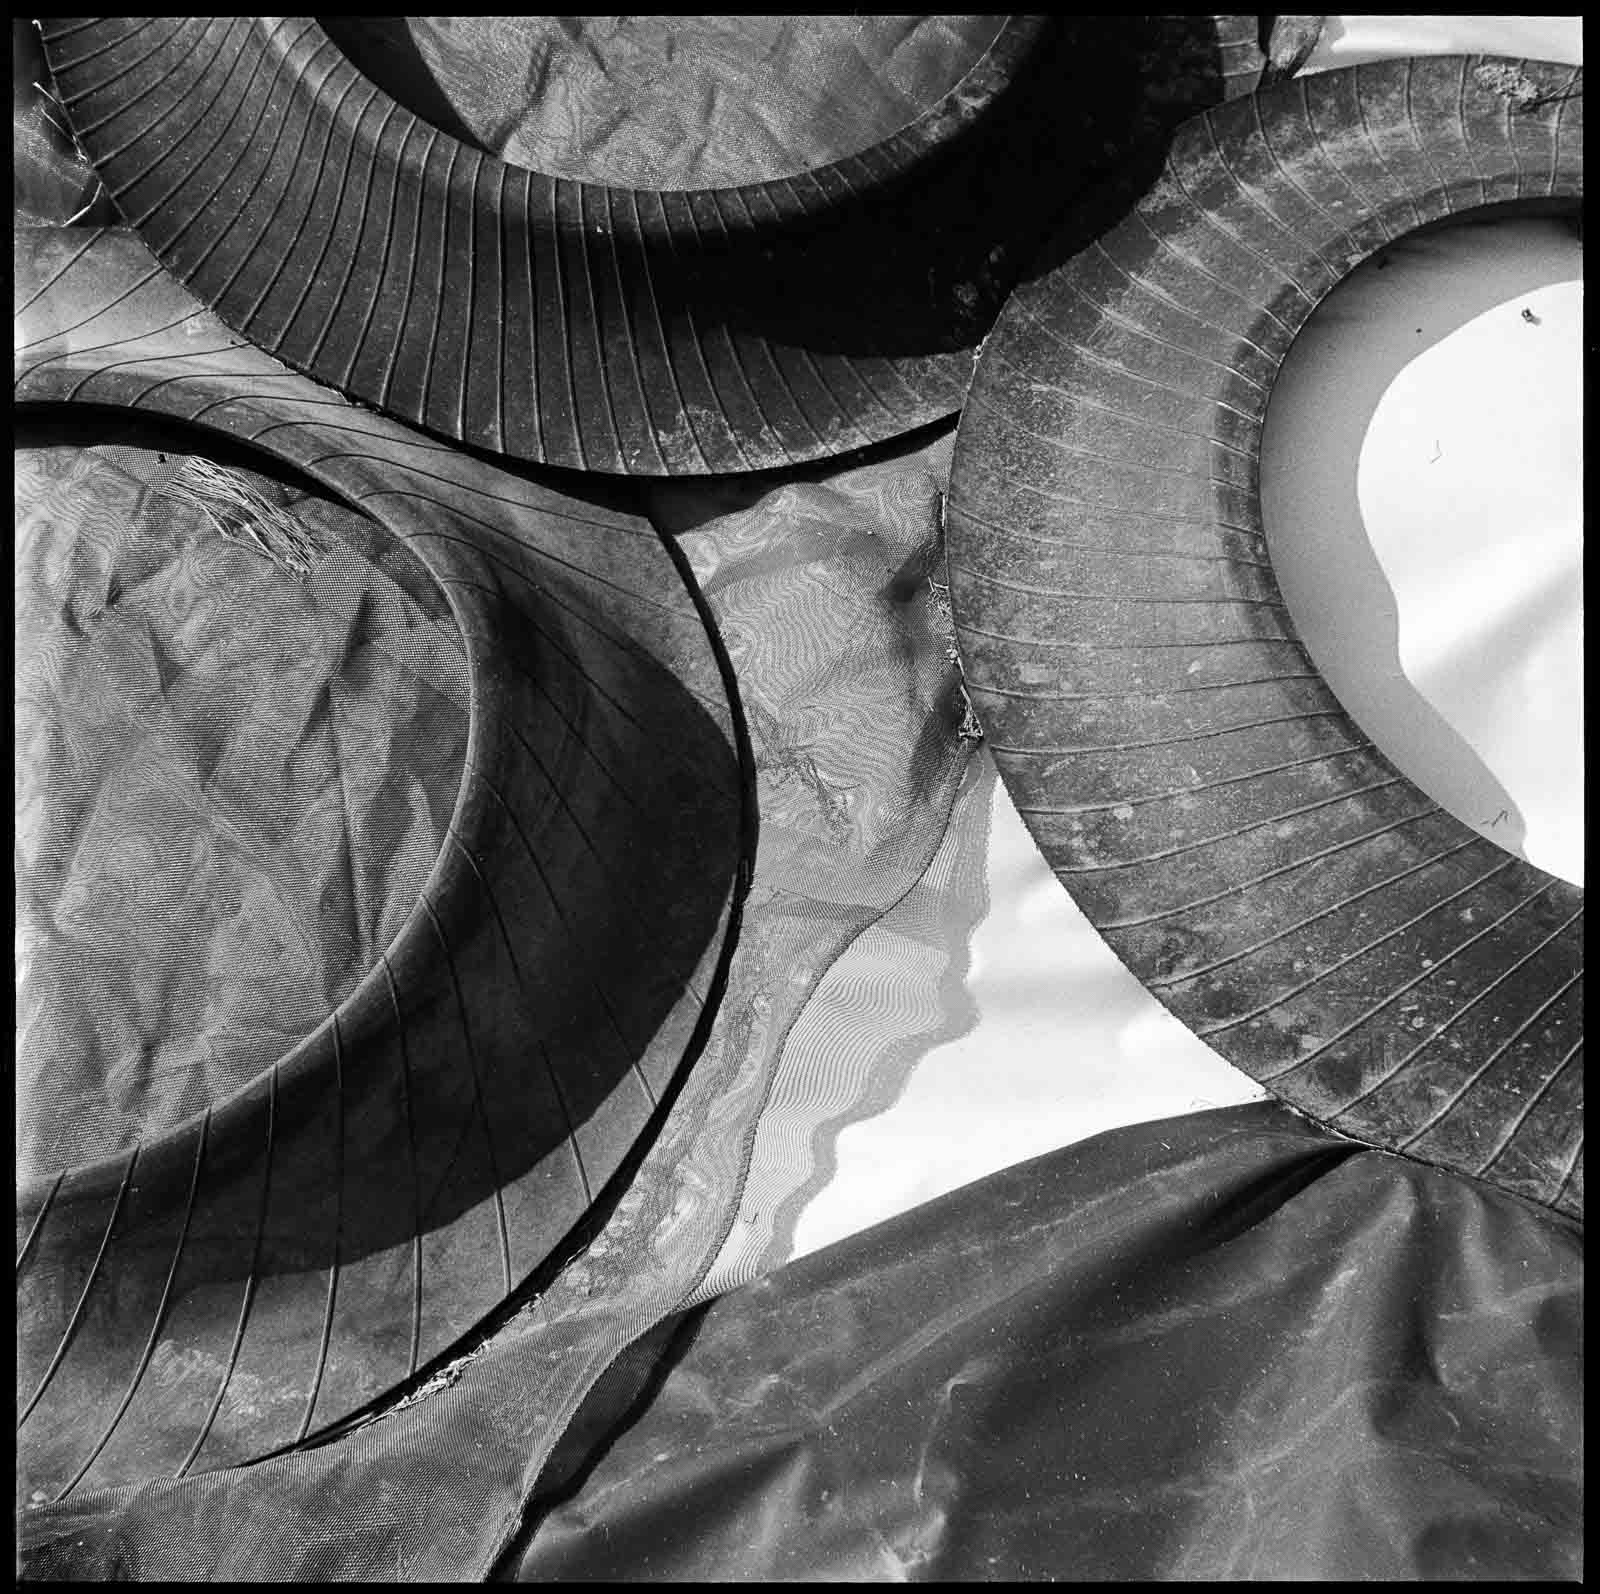 Tarpaulin covers and tyres shot on Ilford Pan F, HC110 solution E